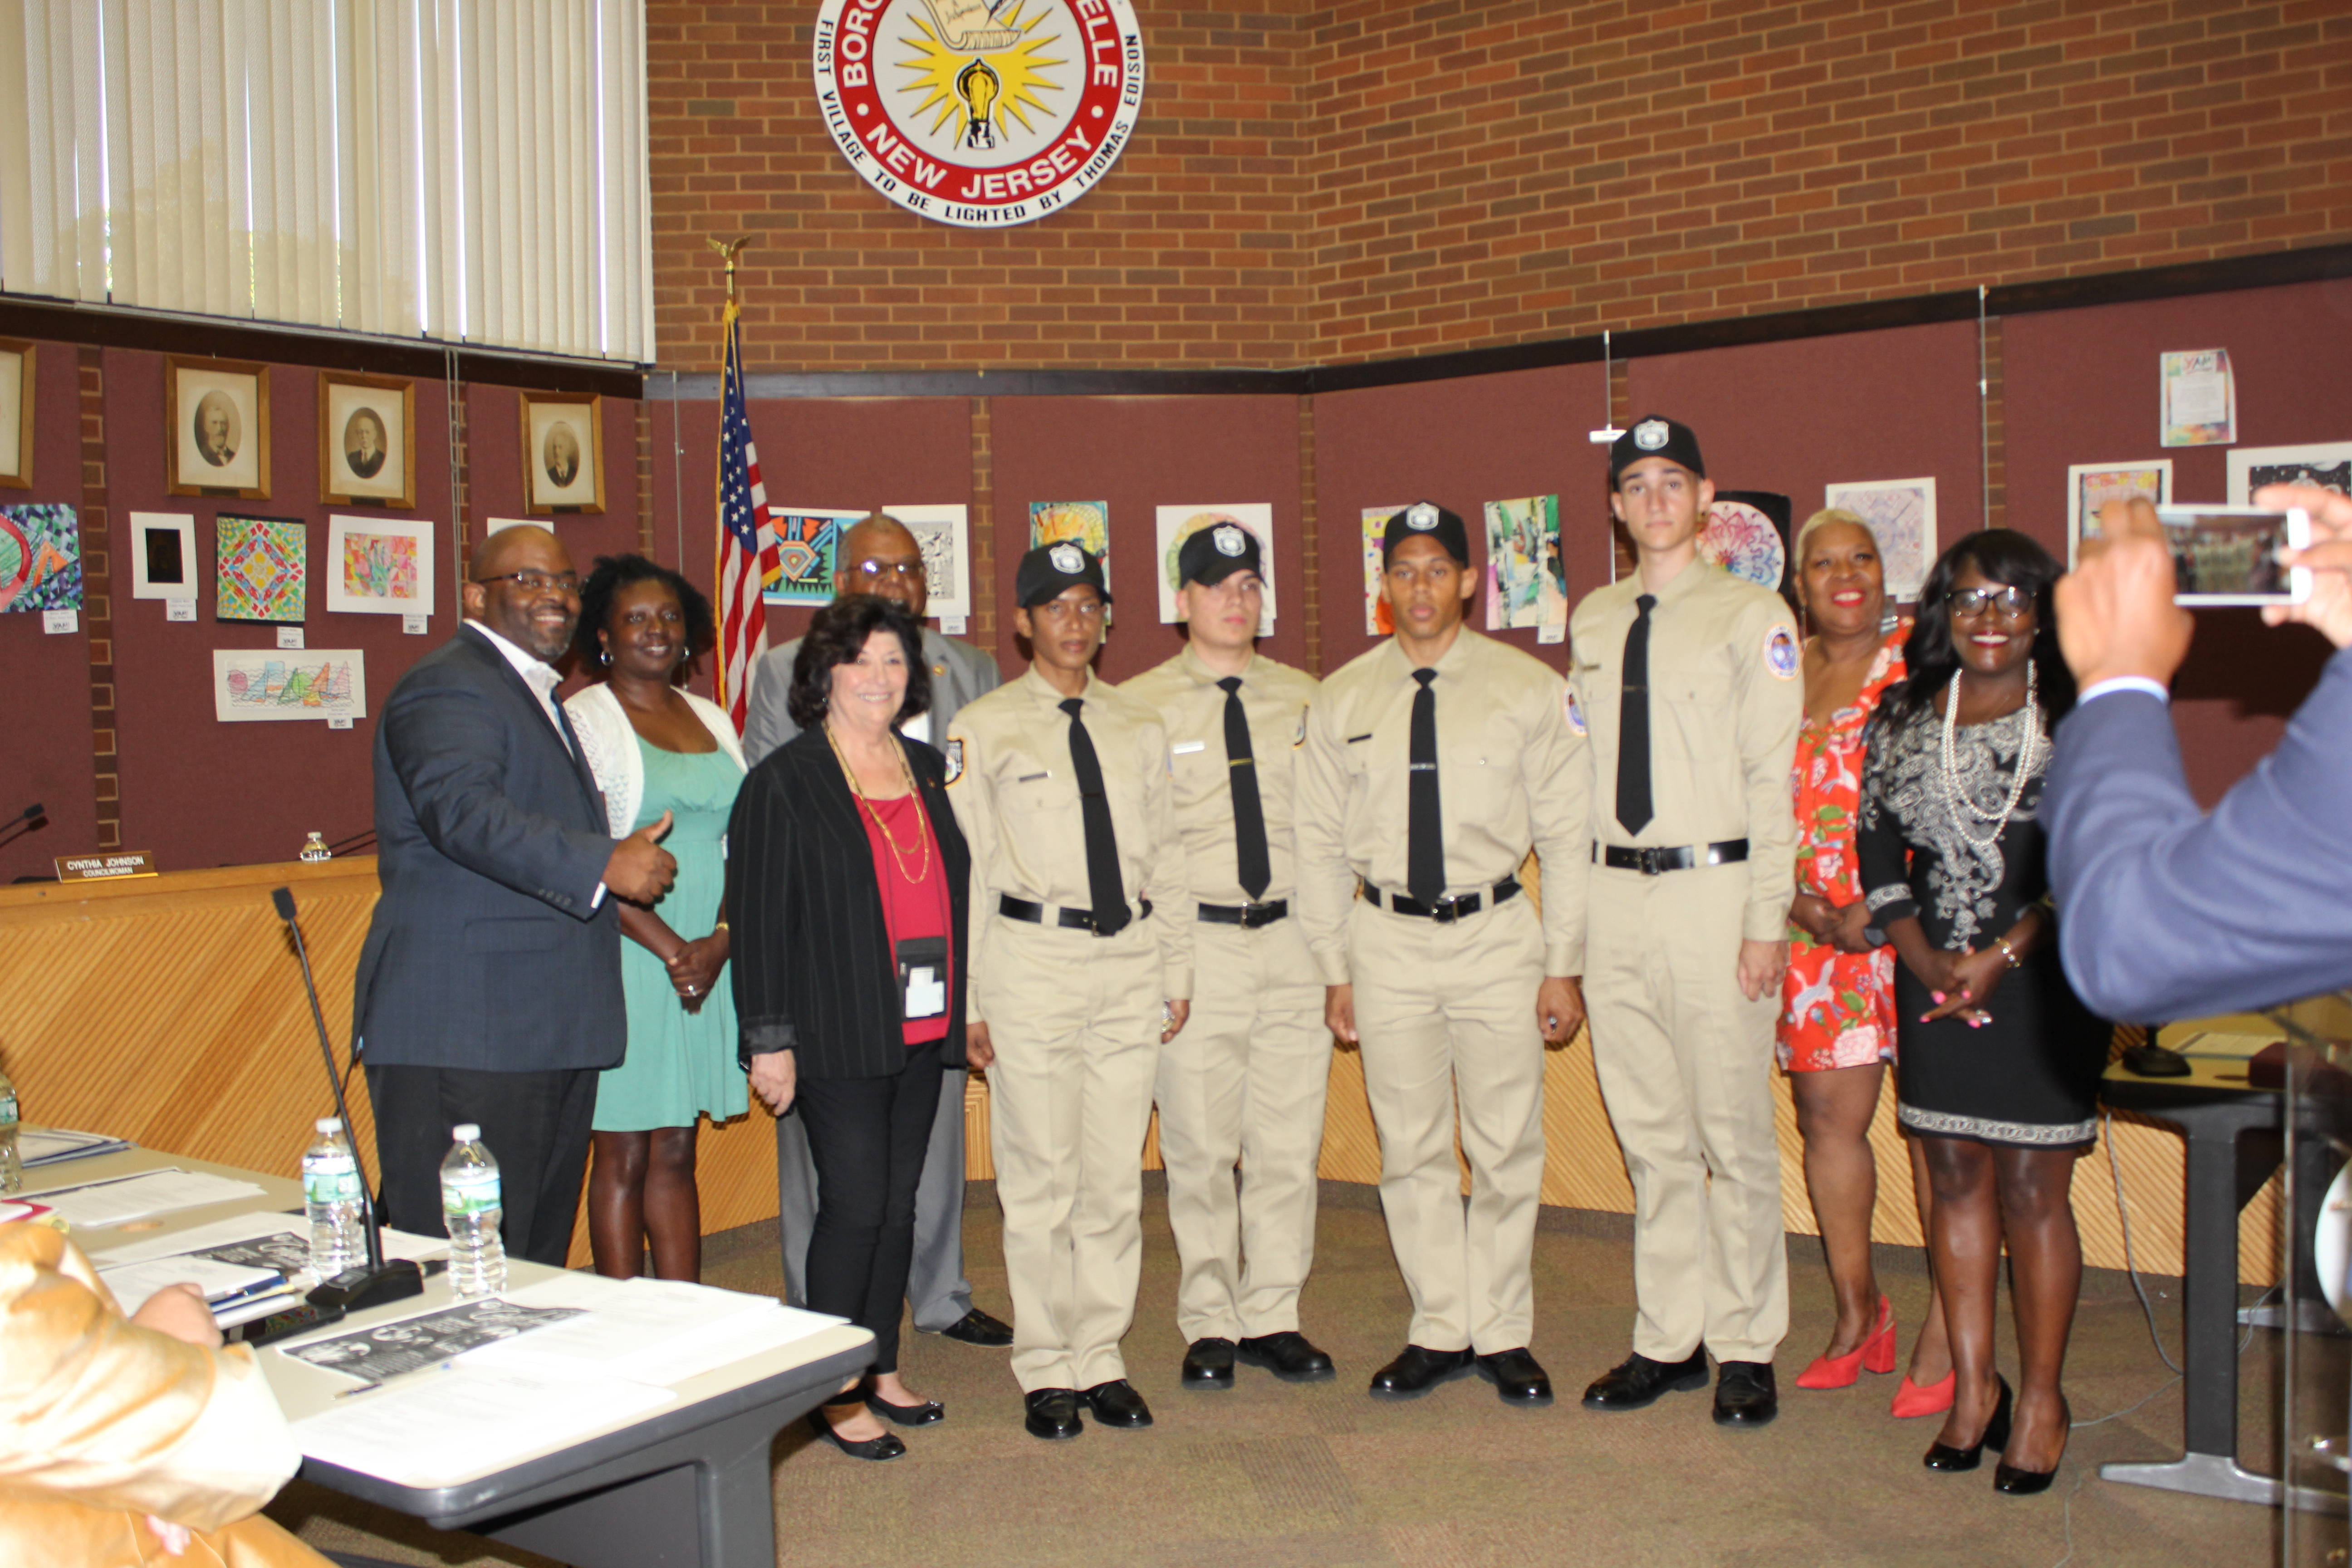 a2e5f90410619cc940eb_New_Roselle_Police_Officers__Mayor__Council.jpg